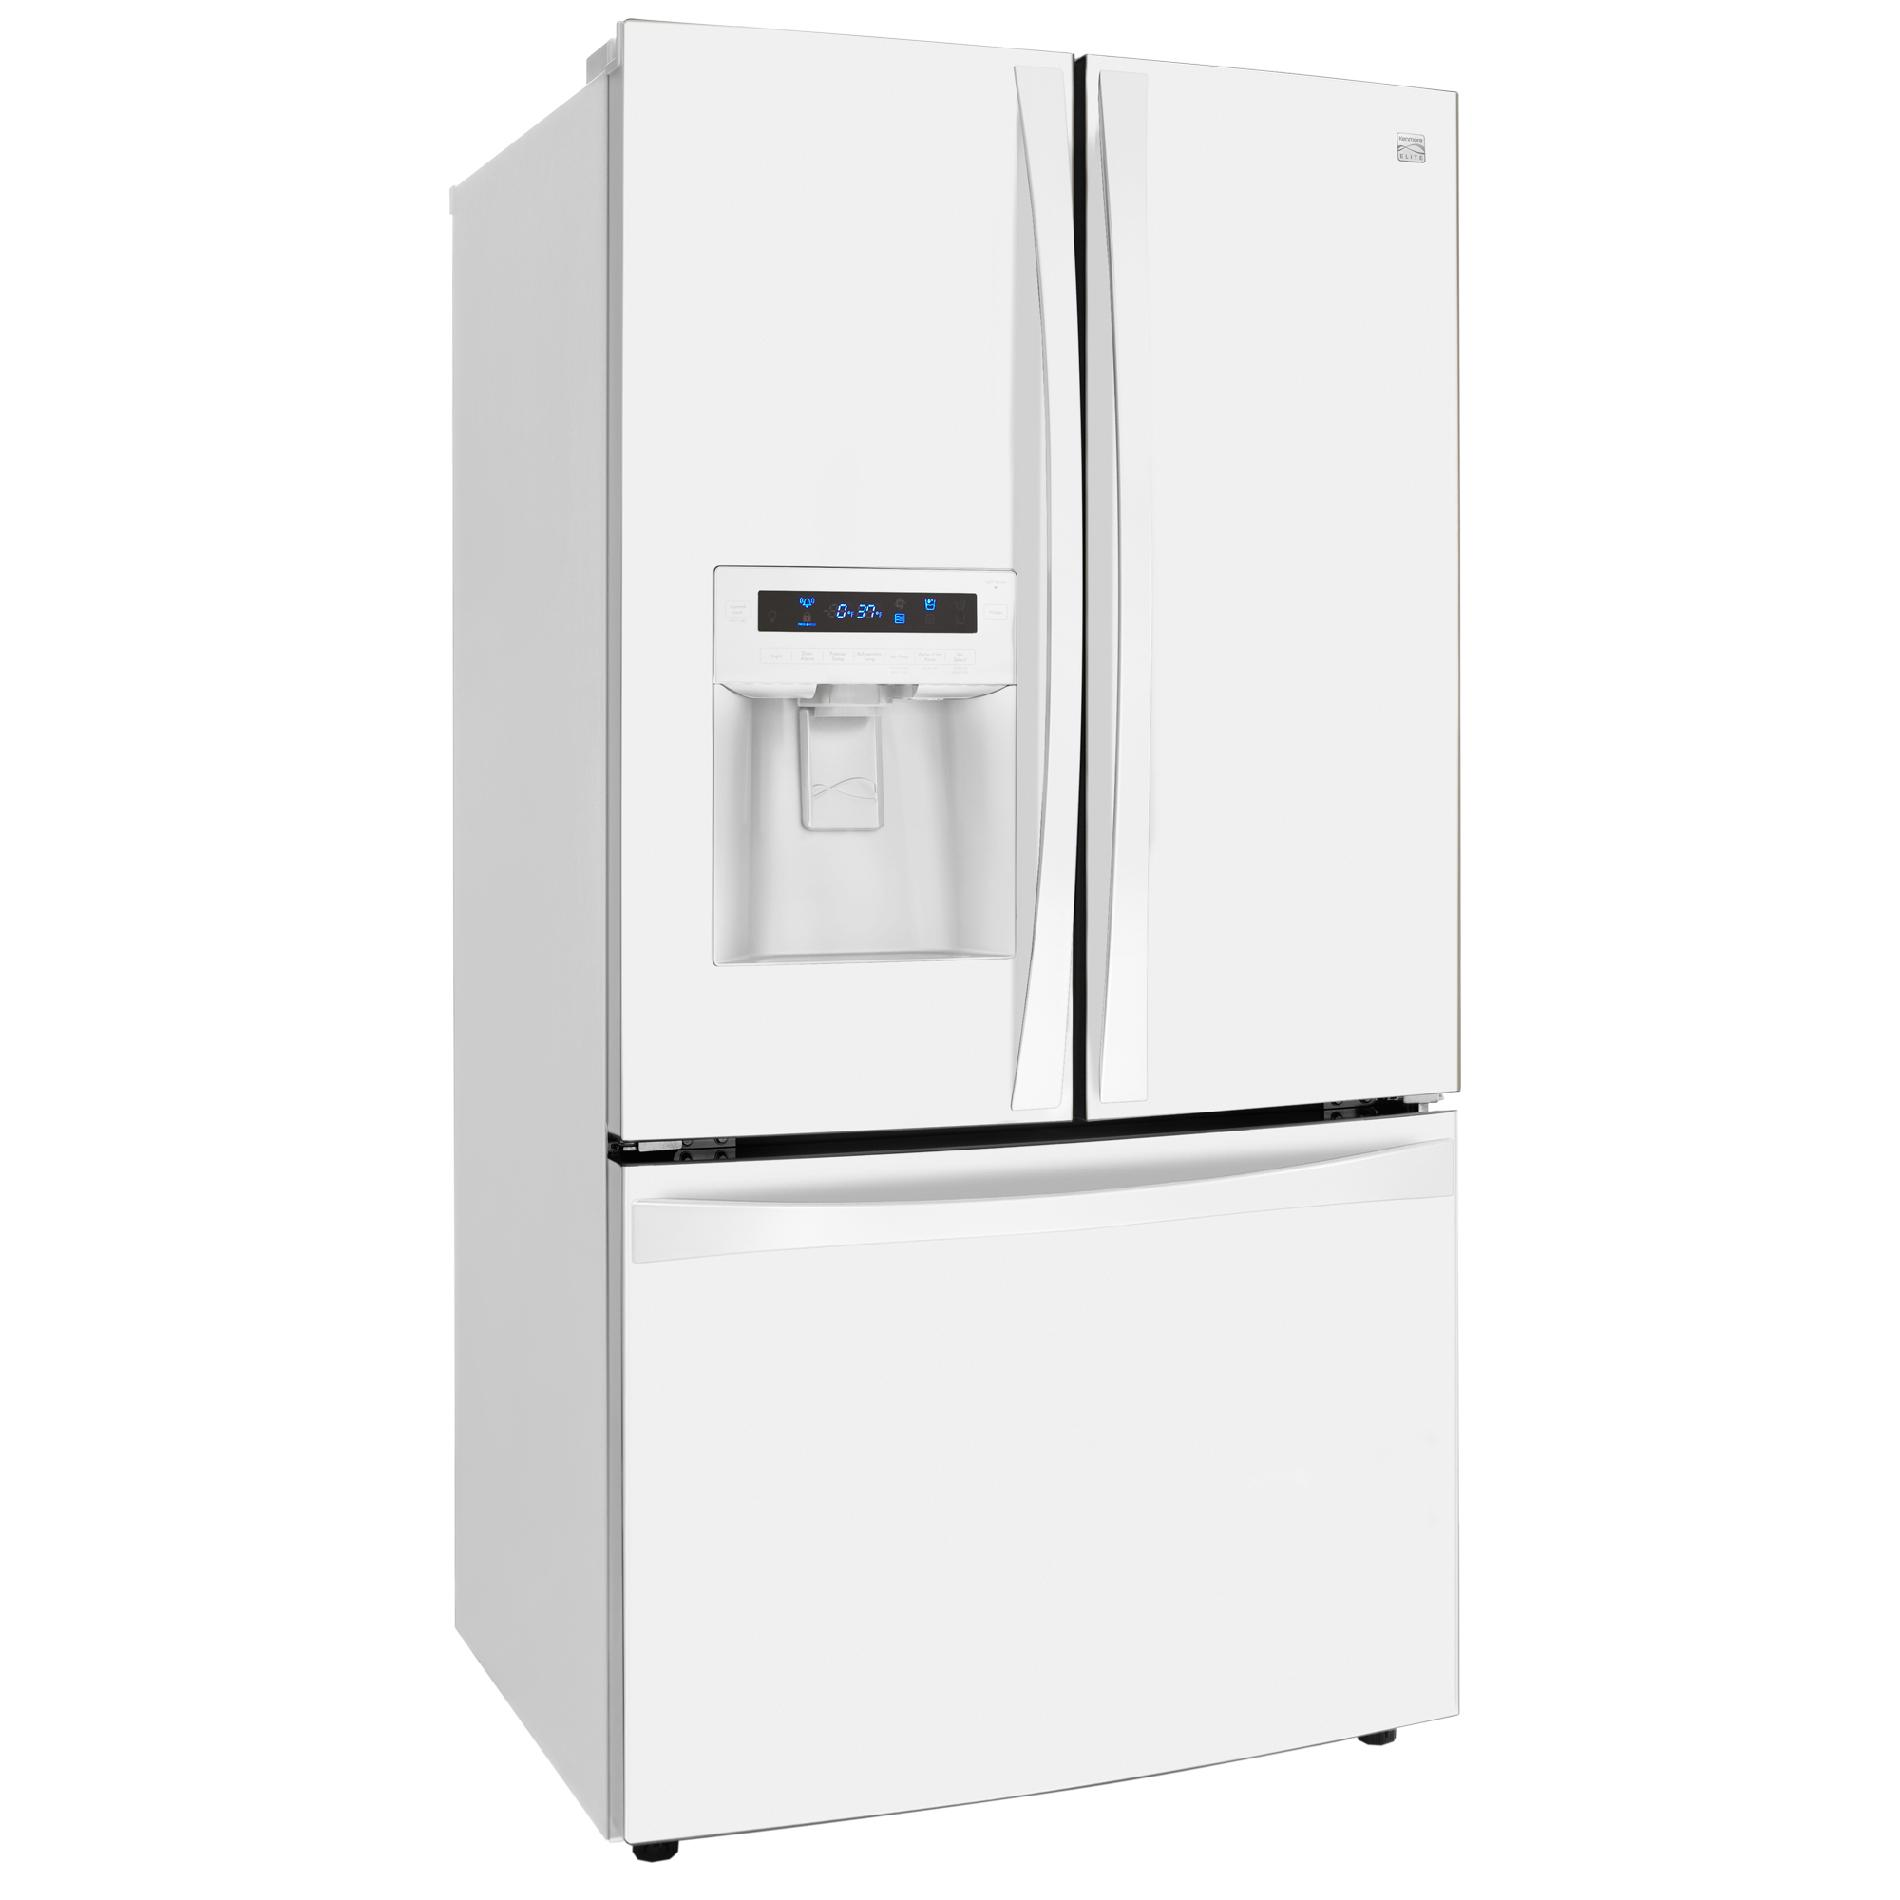 Kenmore Elite 33 cu. ft. French Door Bottom-Freezer Refrigerator - White